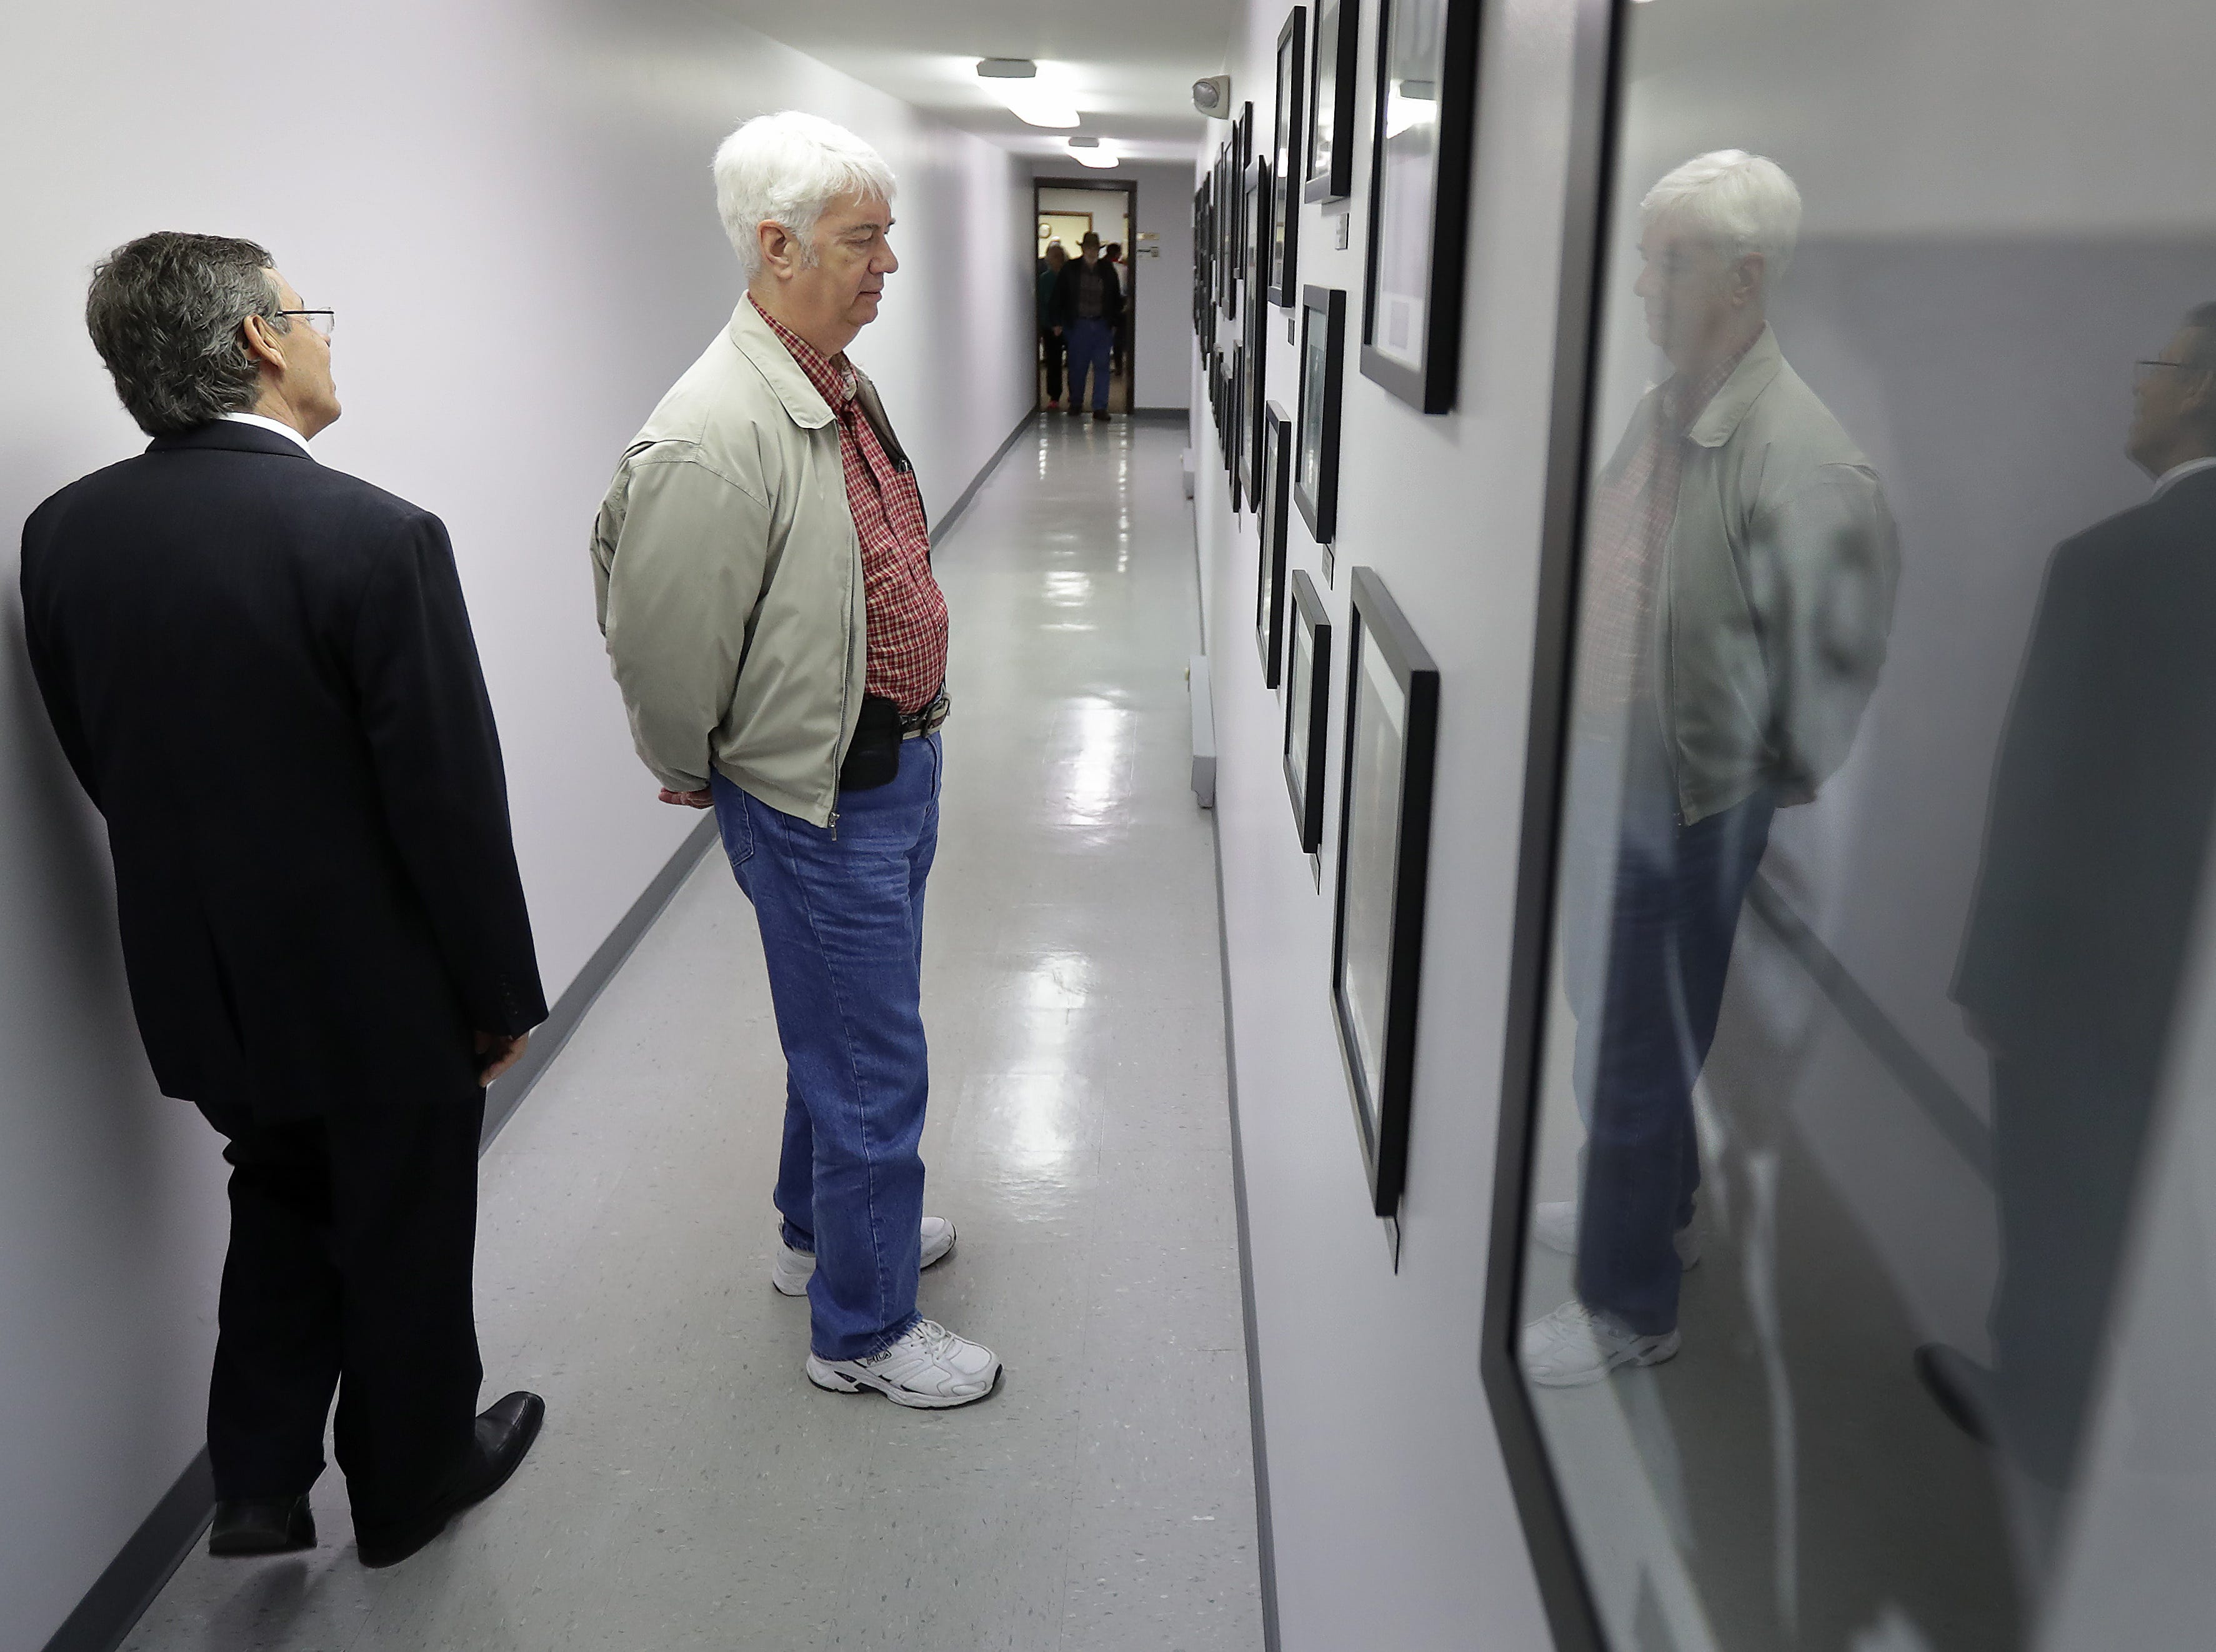 Regional field director Wayne morrow, left and Ivan Price, on right from North Carolina, look at photos in the Robert Welch Hall during the John Birch Society 60th anniversary open house at the John Birch Society headquarters building and The New American news magazine building on Westhill Blvd. on Friday, October 5, 2018, in Grand Chute, Wis. 